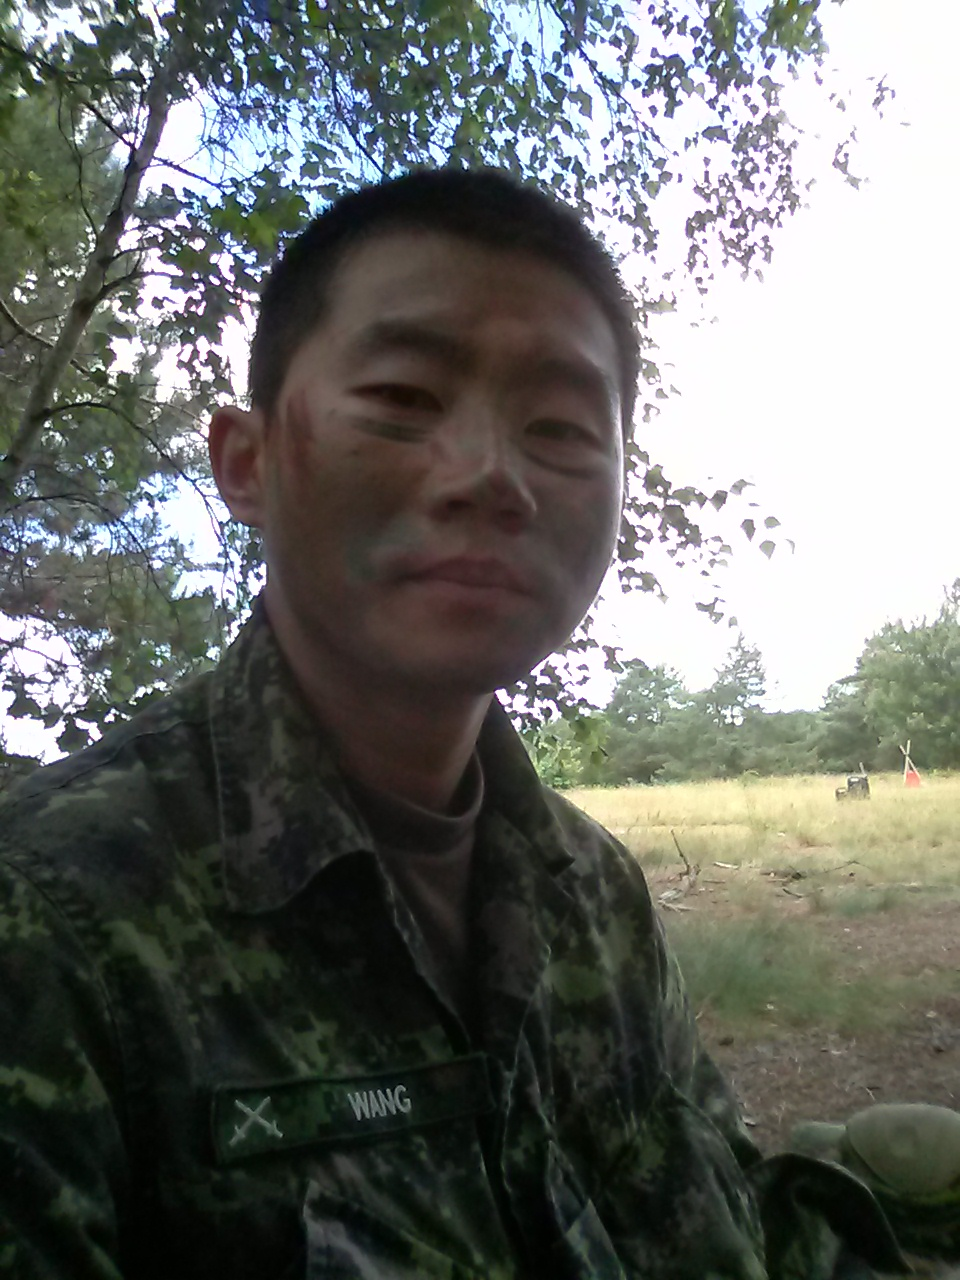 "Second Lieutenant Rui Hao Wang during a break from offensive/defensive training in Officer Phase 2 level of basic training at Camp Aldershot in July 2015. ""Break time was also known as selfie time. I was so tired, and I wanted to document how tired I was,"" he said.